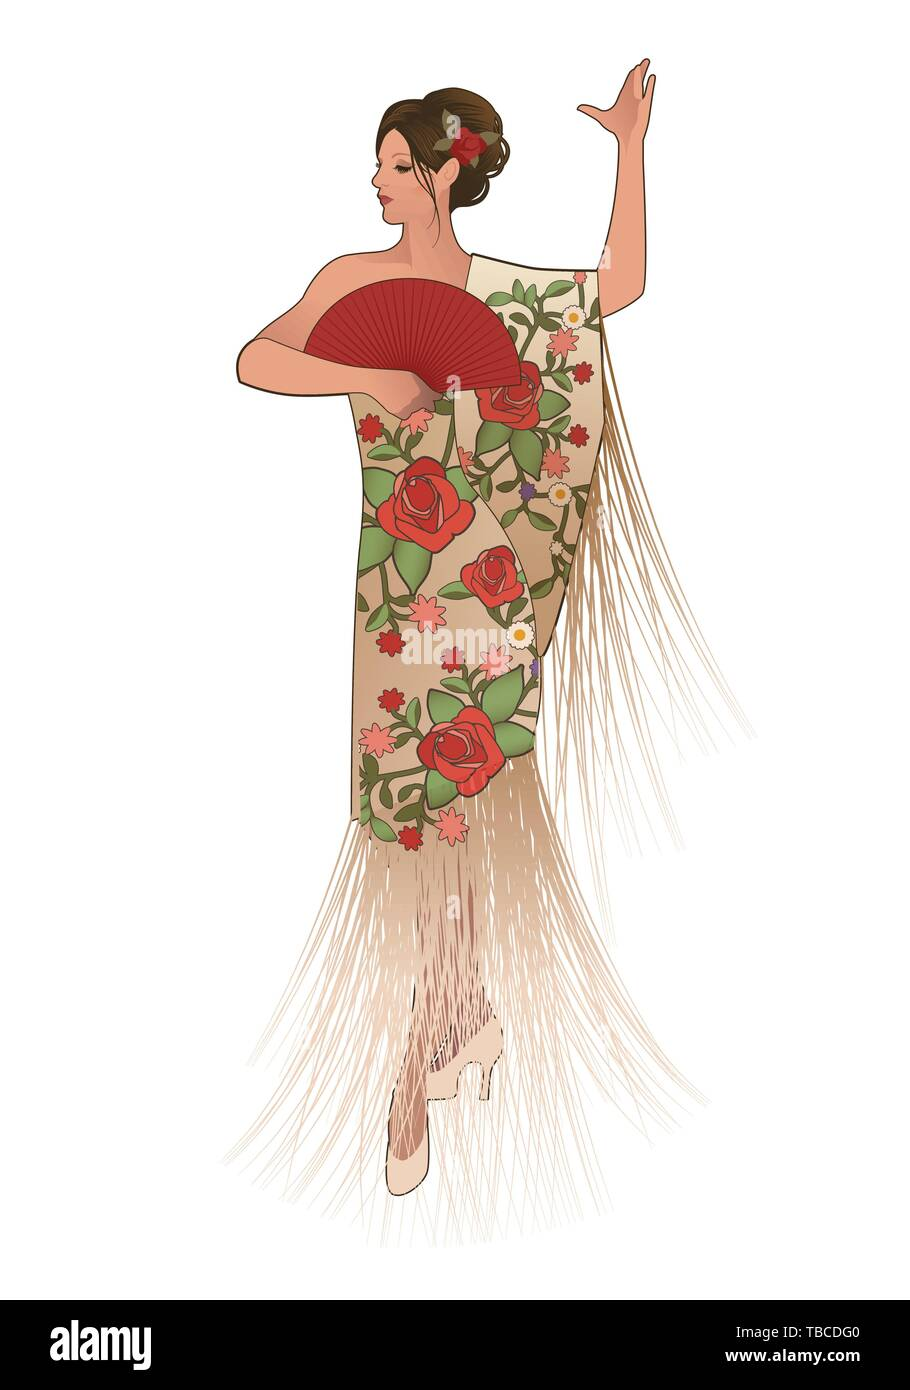 Spanish woman dressed in fringed shawl, wearing fan and flower in her hair, dancing flamenco - Stock Image